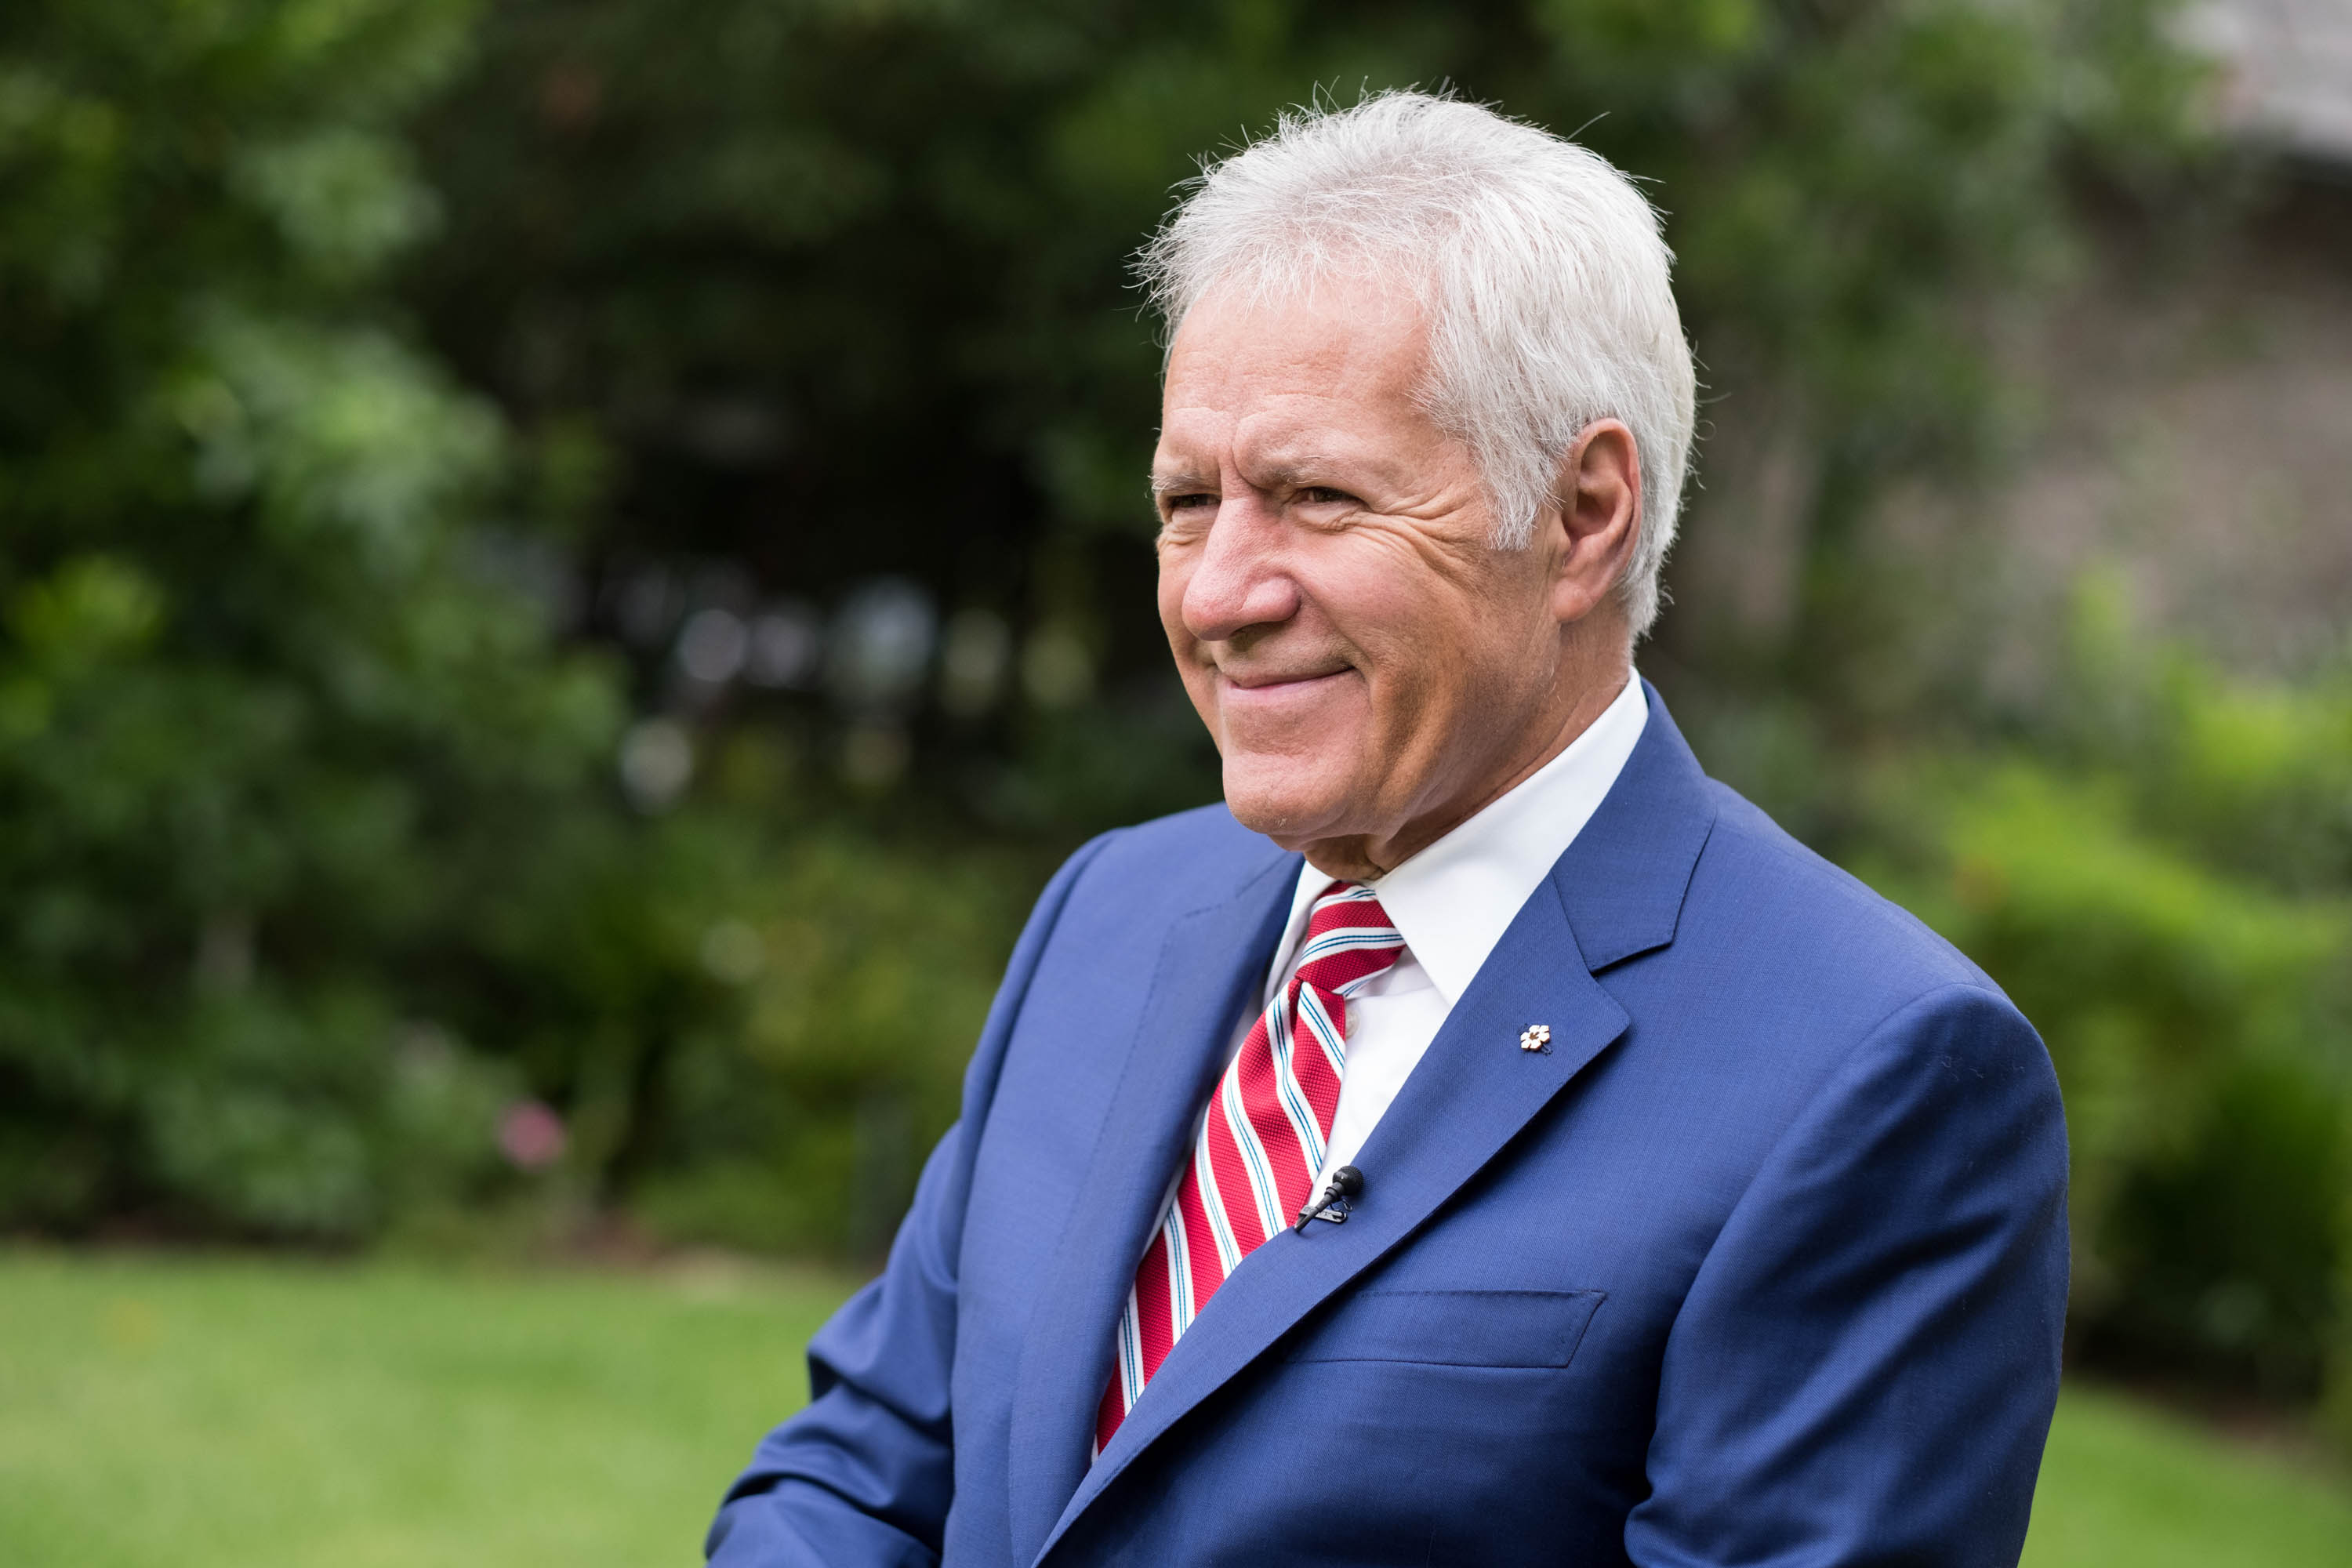 Alex Trebek Back on 'Jeopardy!' Following Cancer Treatment: 'I'm Still Here'